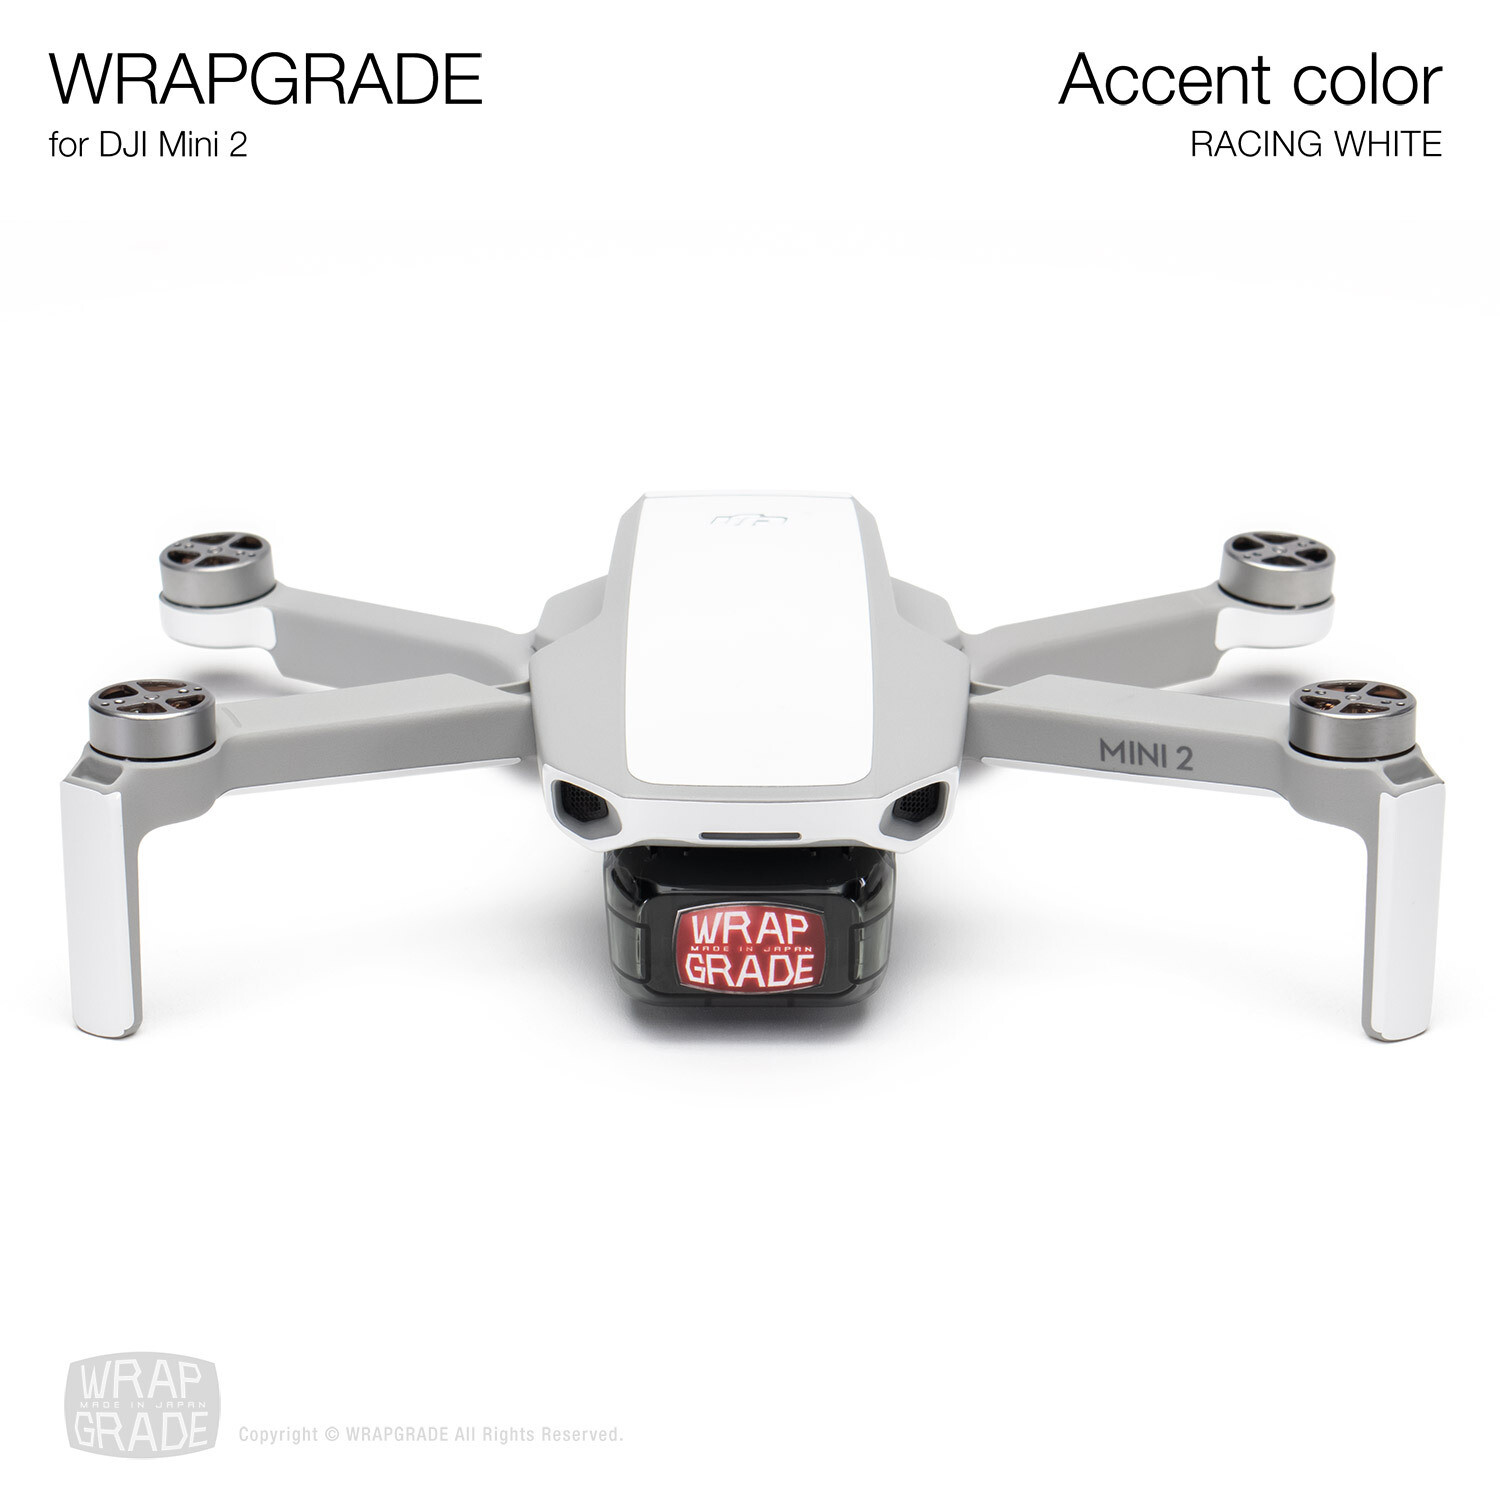 Wrapgrade Poly Skin for DJI Mini 2 | Accent color (RACING WHITE)